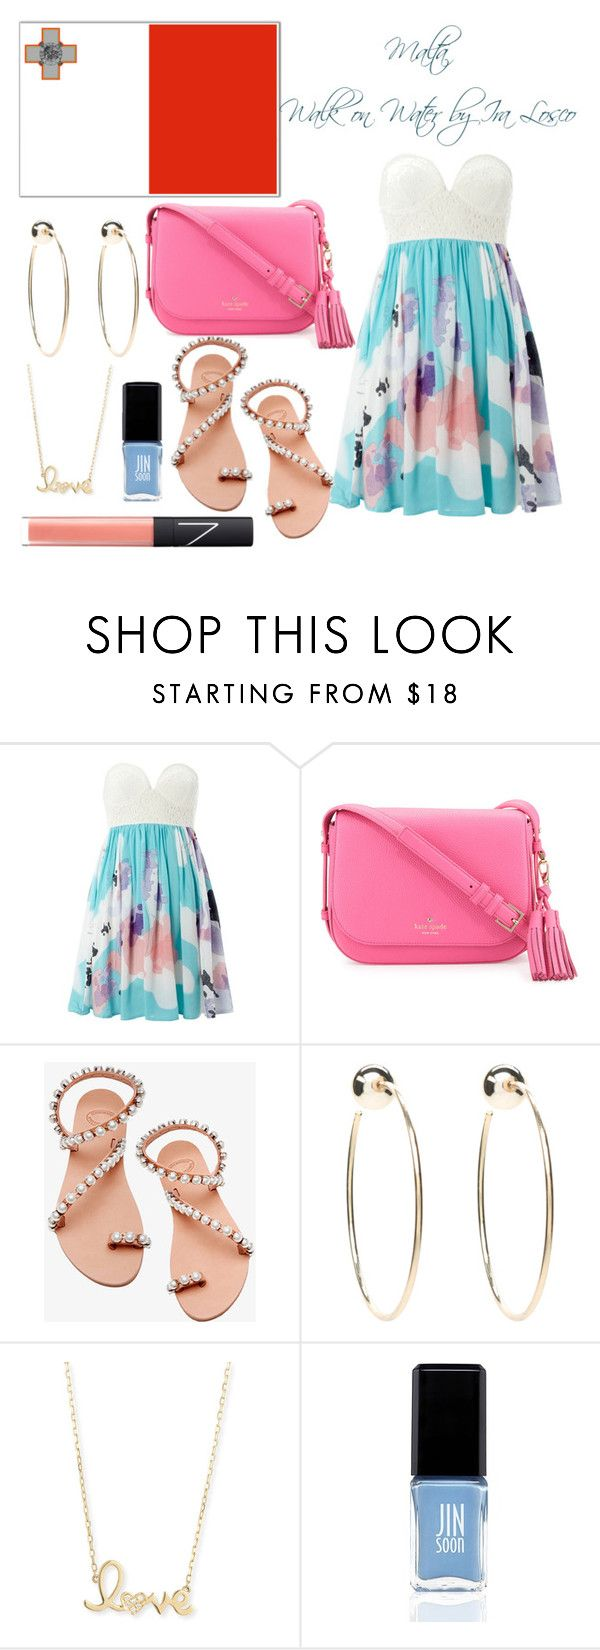 """Malta Eurovision 2016"" by grace-buerklin ❤ liked on Polyvore featuring Izabel London, Kate Spade, Elina Linardaki, Bebe, Sydney Evan, JINsoon, NARS Cosmetics, malta and eurovision2016"